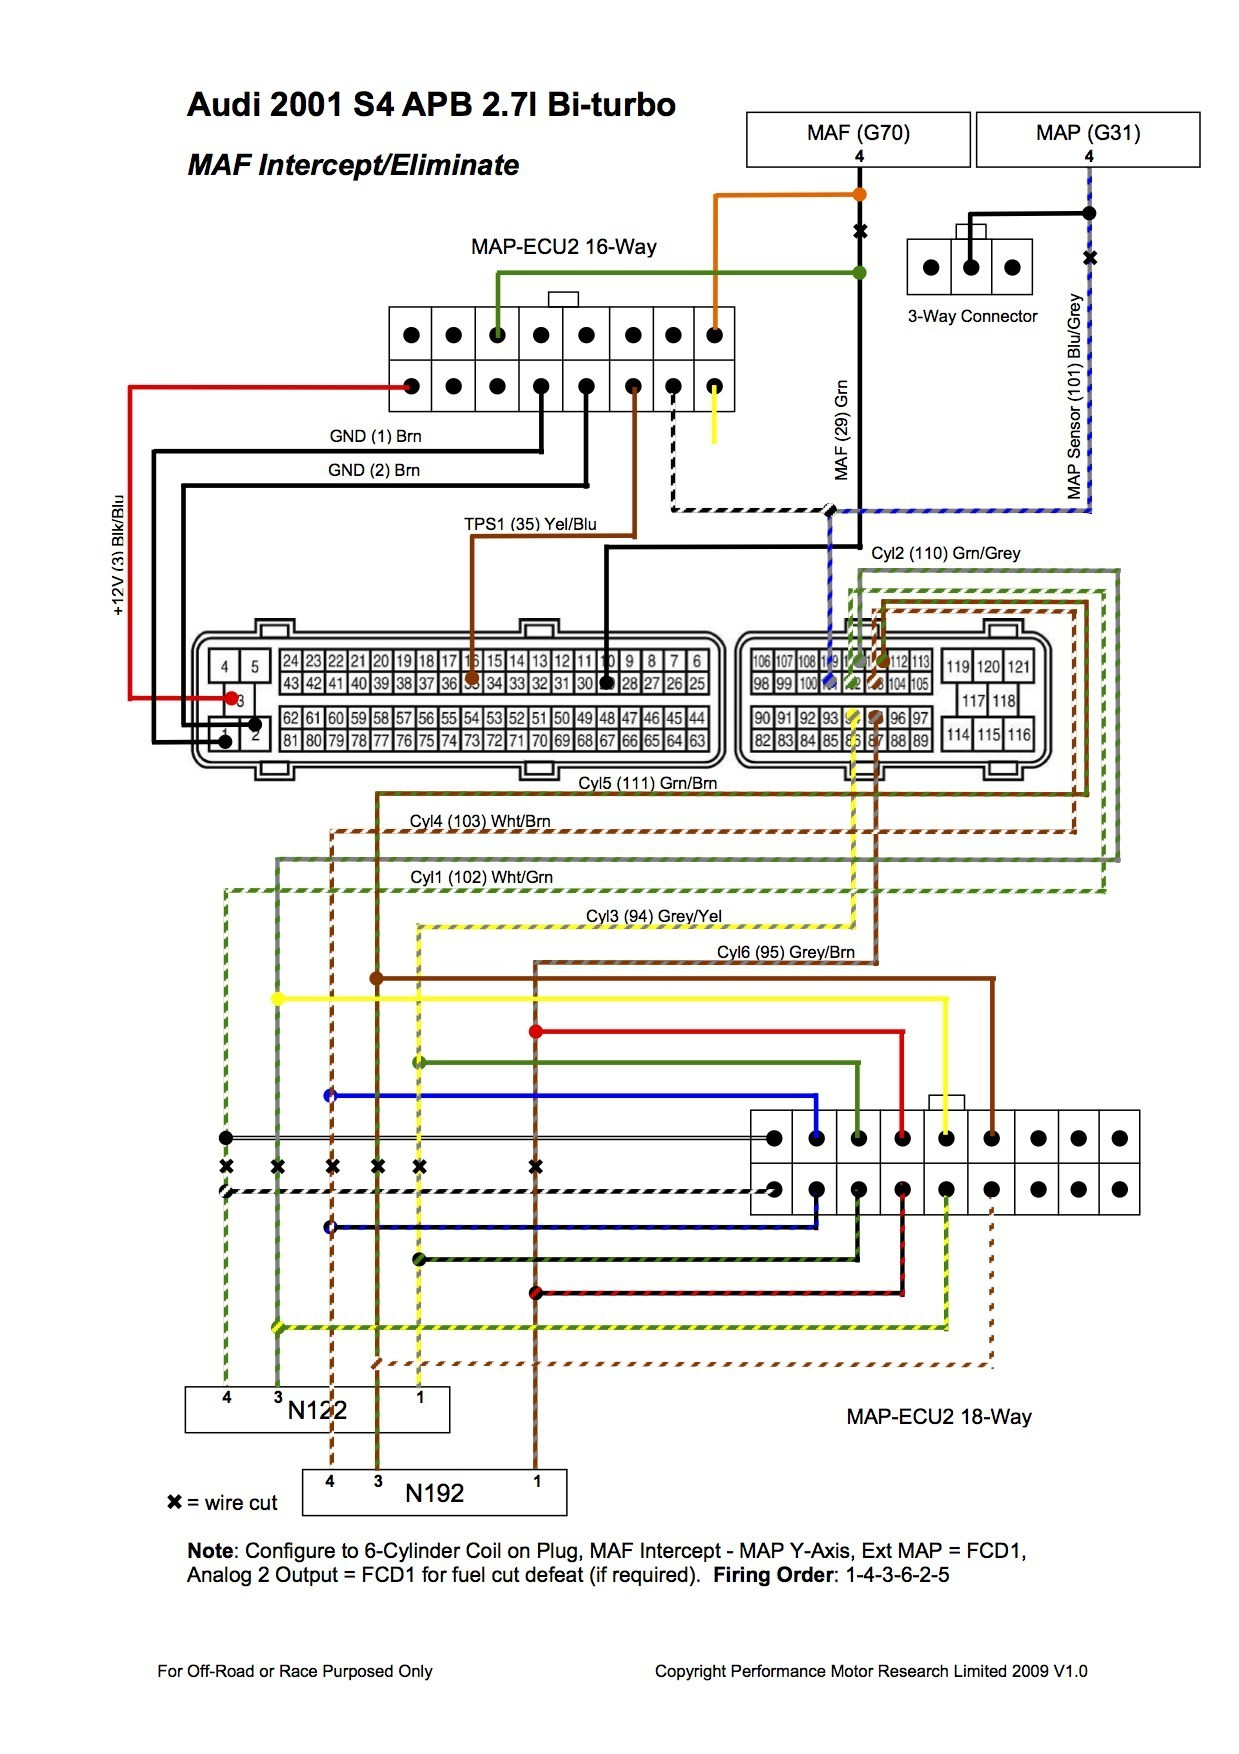 1997 honda civic stereo wiring diagram cool radio s best use the tree to predict probability 2006 engine library